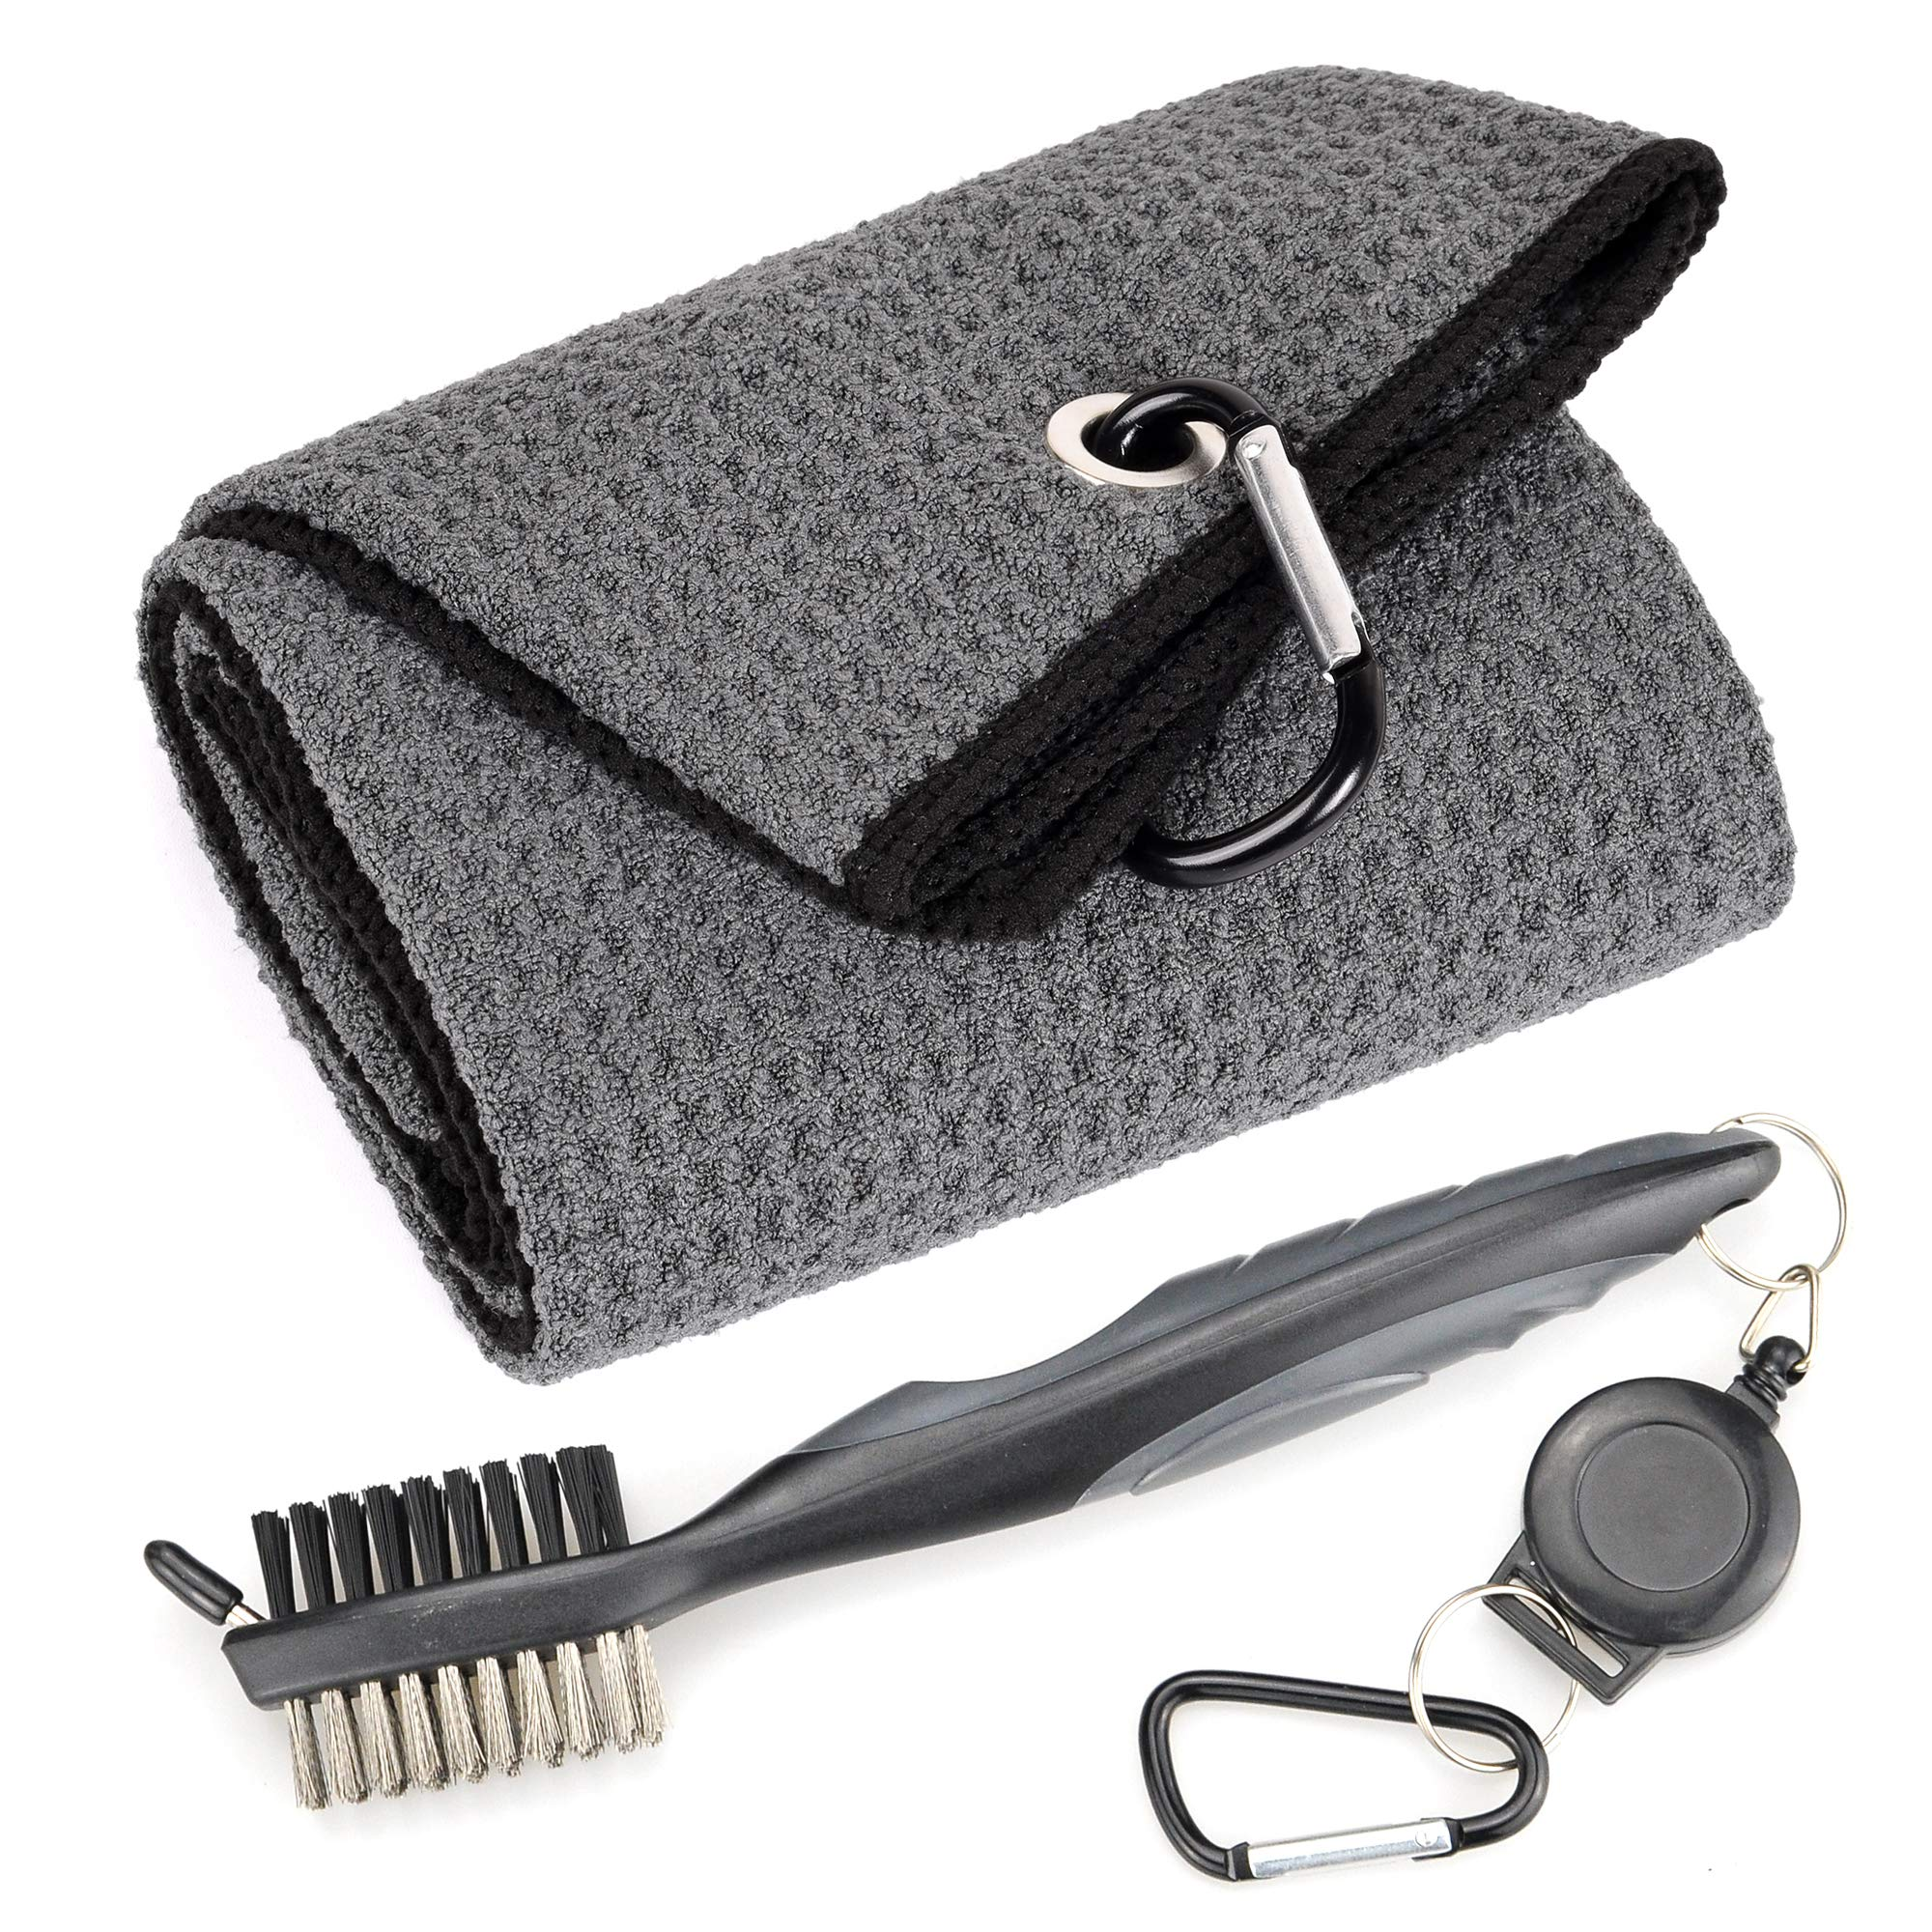 Mile High Life Microfiber Waffle Pattern Tri-fold Golf Towel | Brush Tool Kit with Club Groove Cleaner, Retractable Extension Cord and Clip (Dark Gray Towel+Gray Brush) by Mile High Life